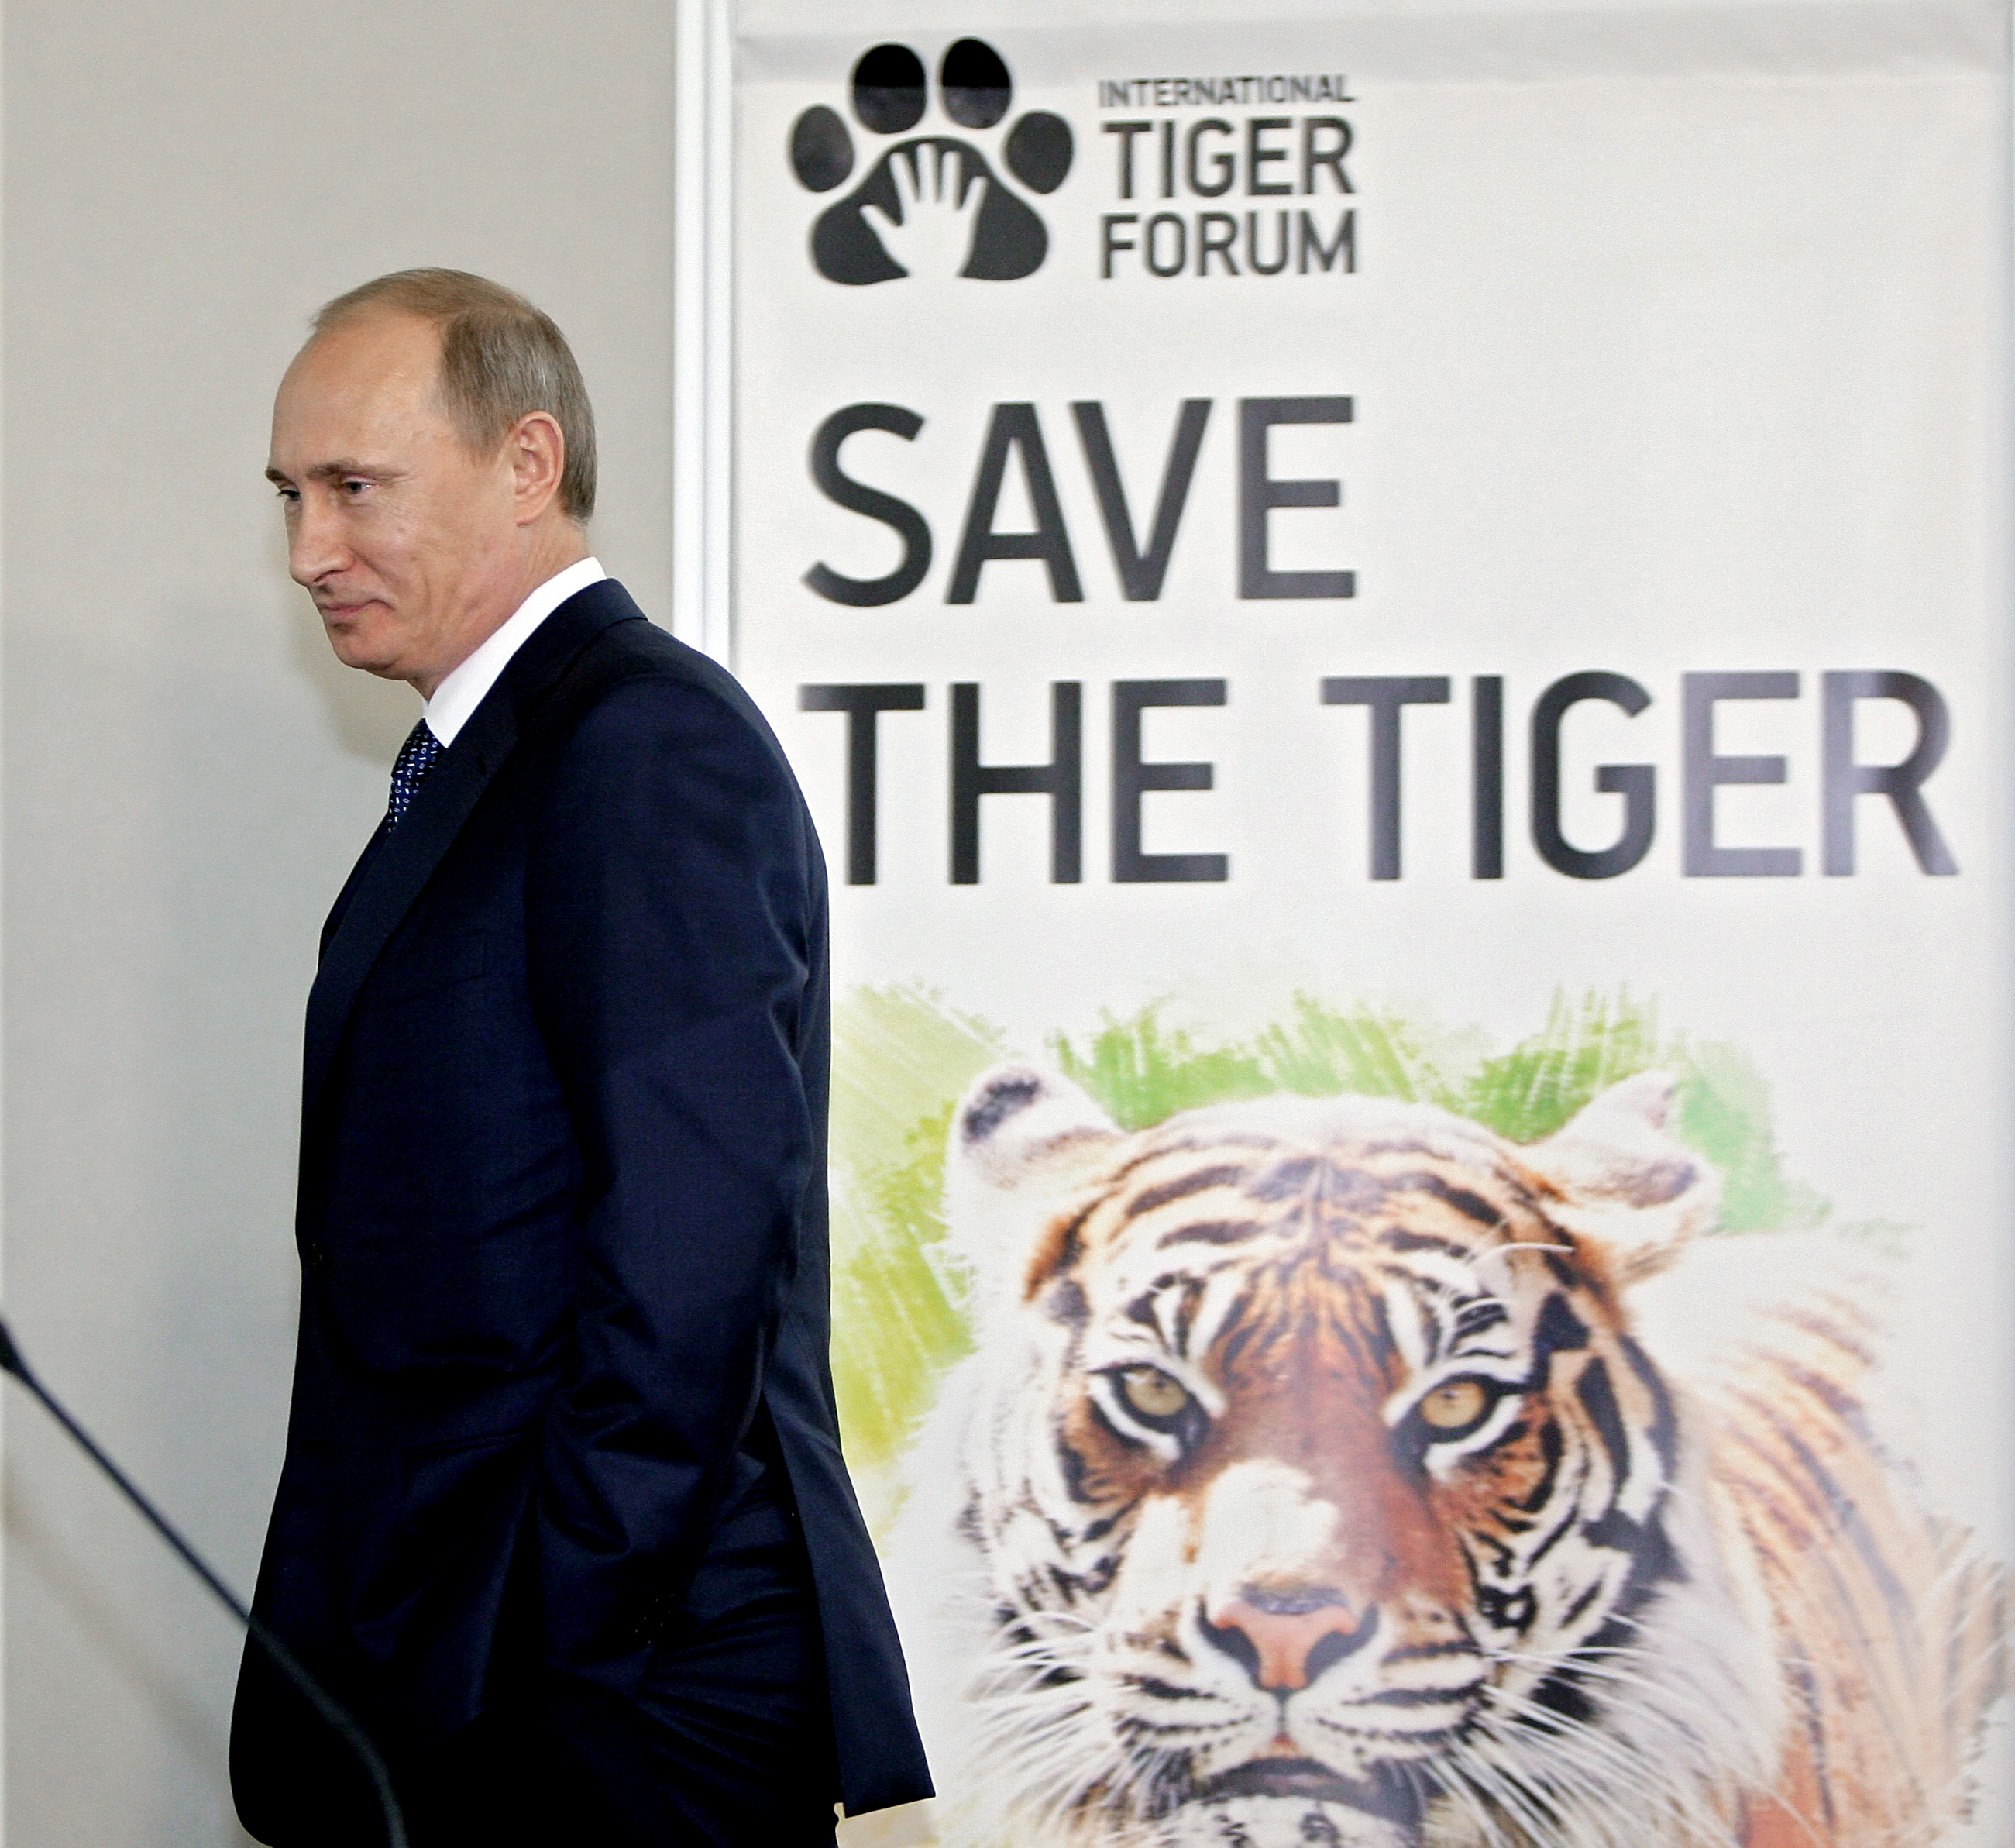 Vladimir Putin at the International Tiger Conservation Forum, November 23, 2010.